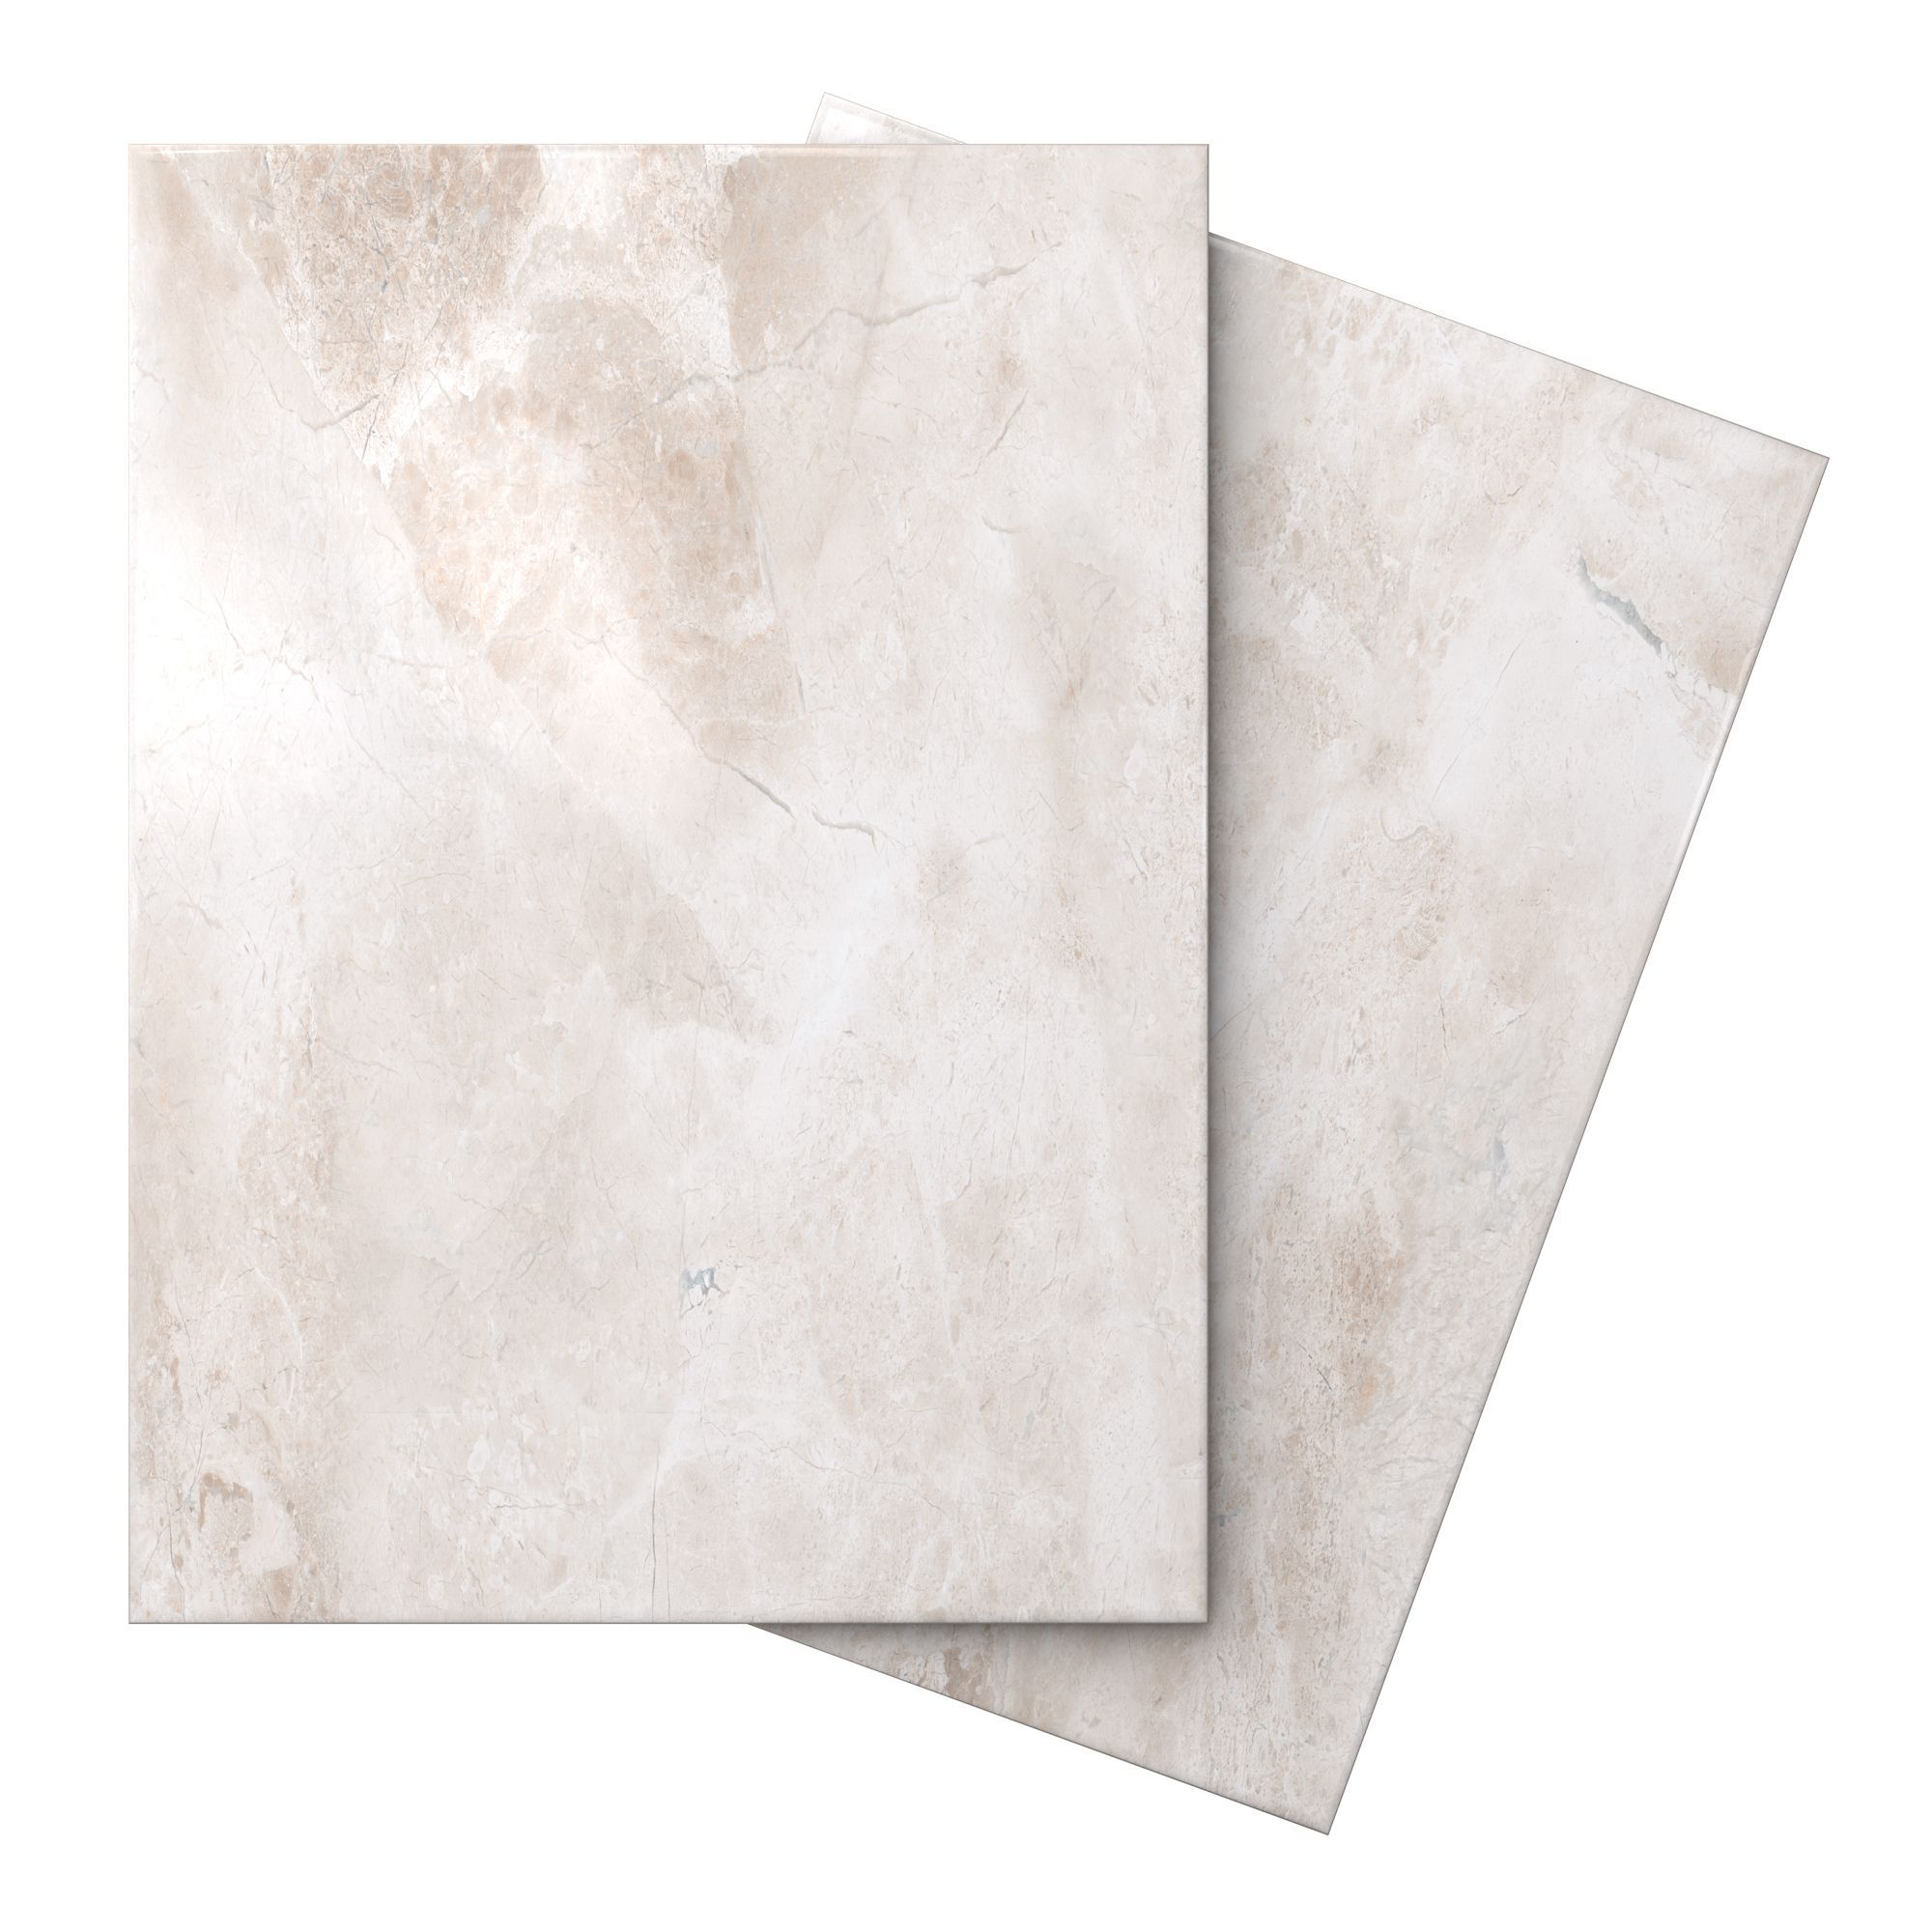 Illusion Cappuccino Marble Effect Ceramic Wall Floor Tile Pack Of 10 L 360mm W 275mm Departments Diy At B Q Tile Floor Tiles Marble Effect